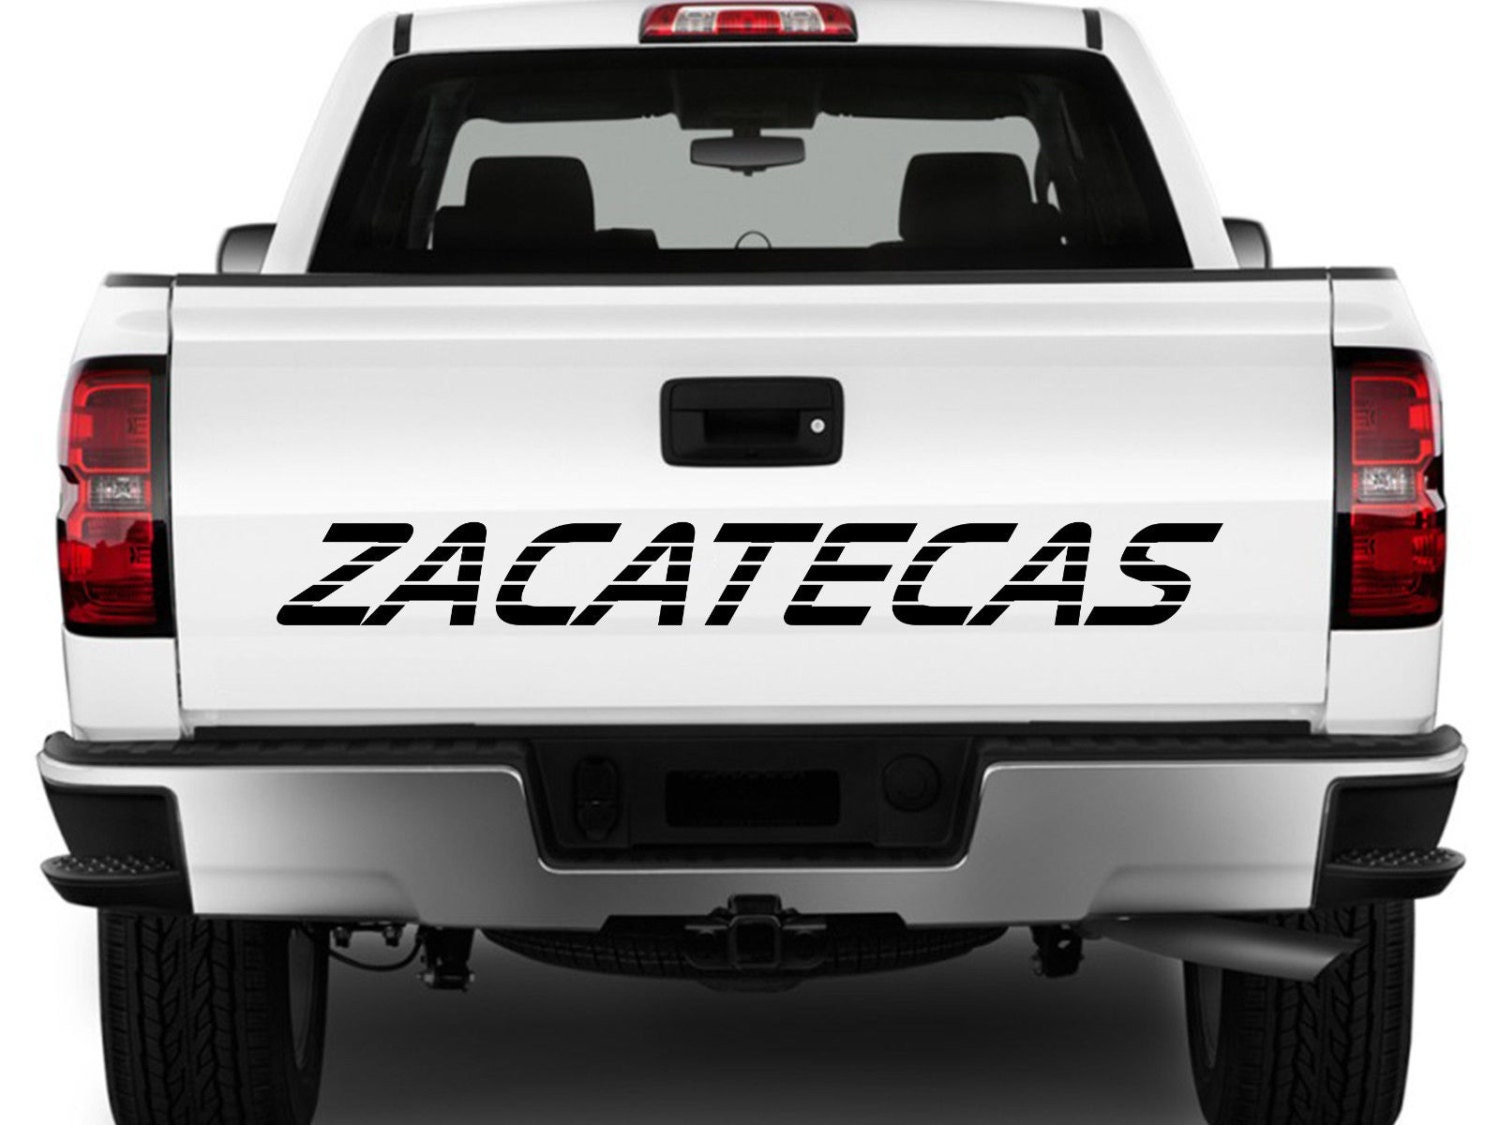 Zacatecas Mexico Truck Decal Sticker Tailgate For Chevy - Chevy silverado stickers